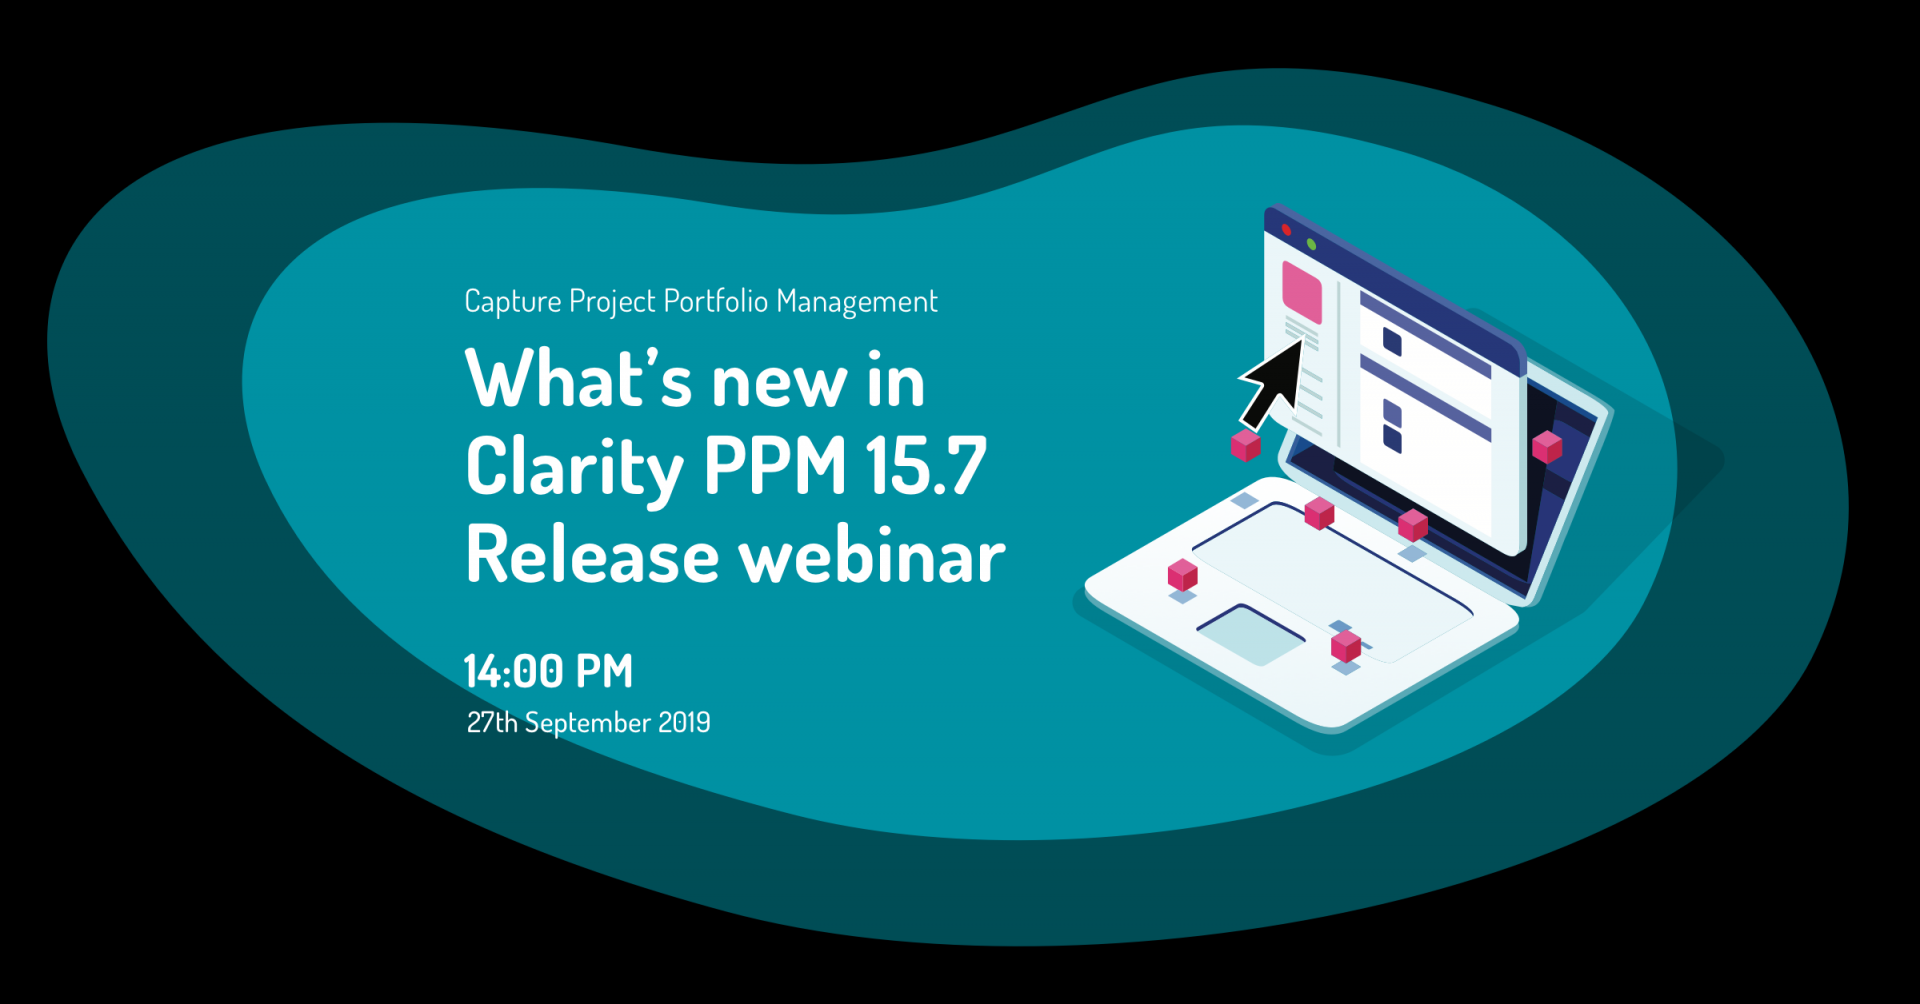 Clarity PPM 15.7